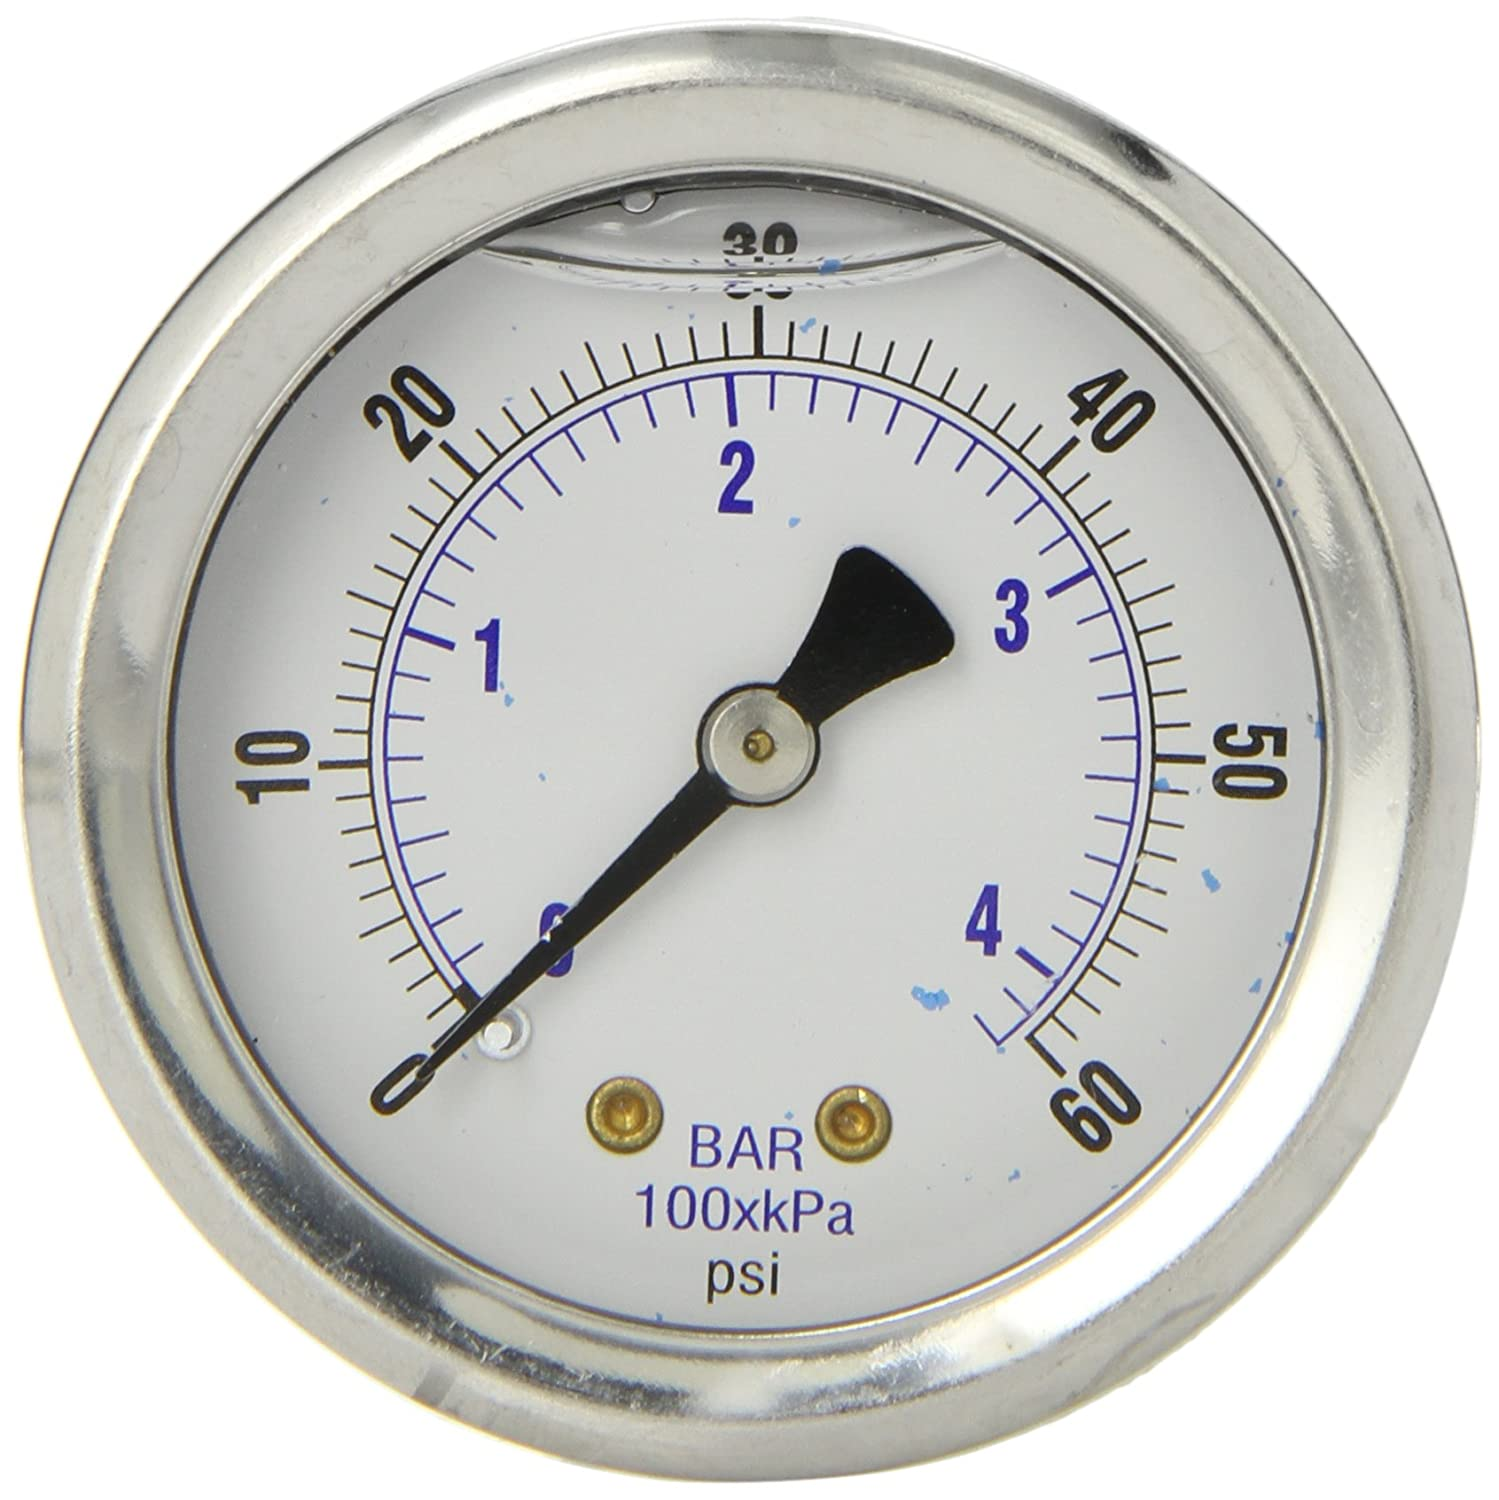 PIC Gauge 202L 204D 2 Dial 0 60 psi Range 1 4 Male NPT Connection Size Center Back Mount Glycerine Filled Pressure Gauge with a Stainless Steel Case Brass Internals Stainless Steel Bezel and Polycarbonate Lens